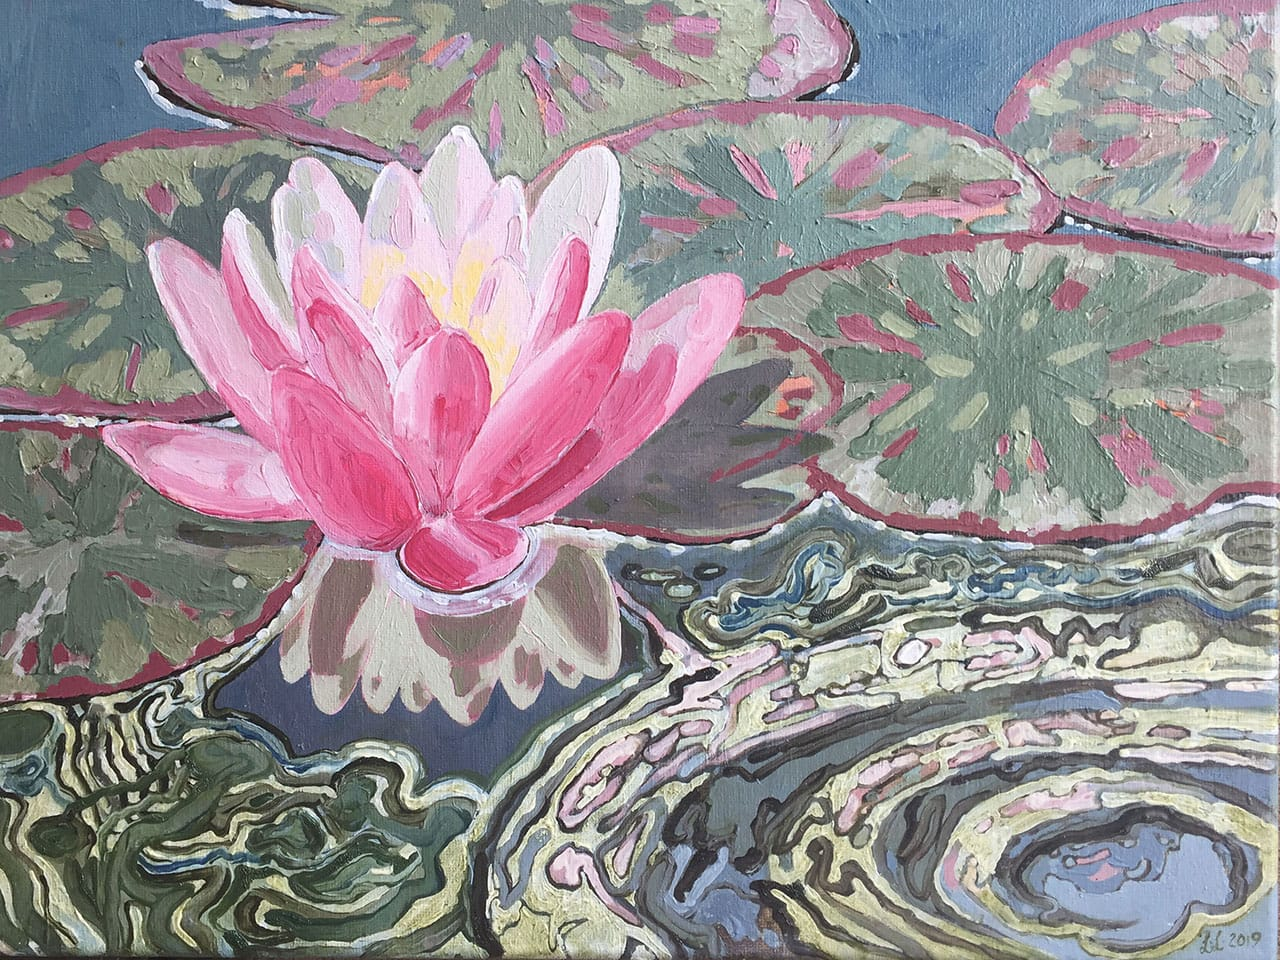 Water Lily, oil on canvas, 12x16inches